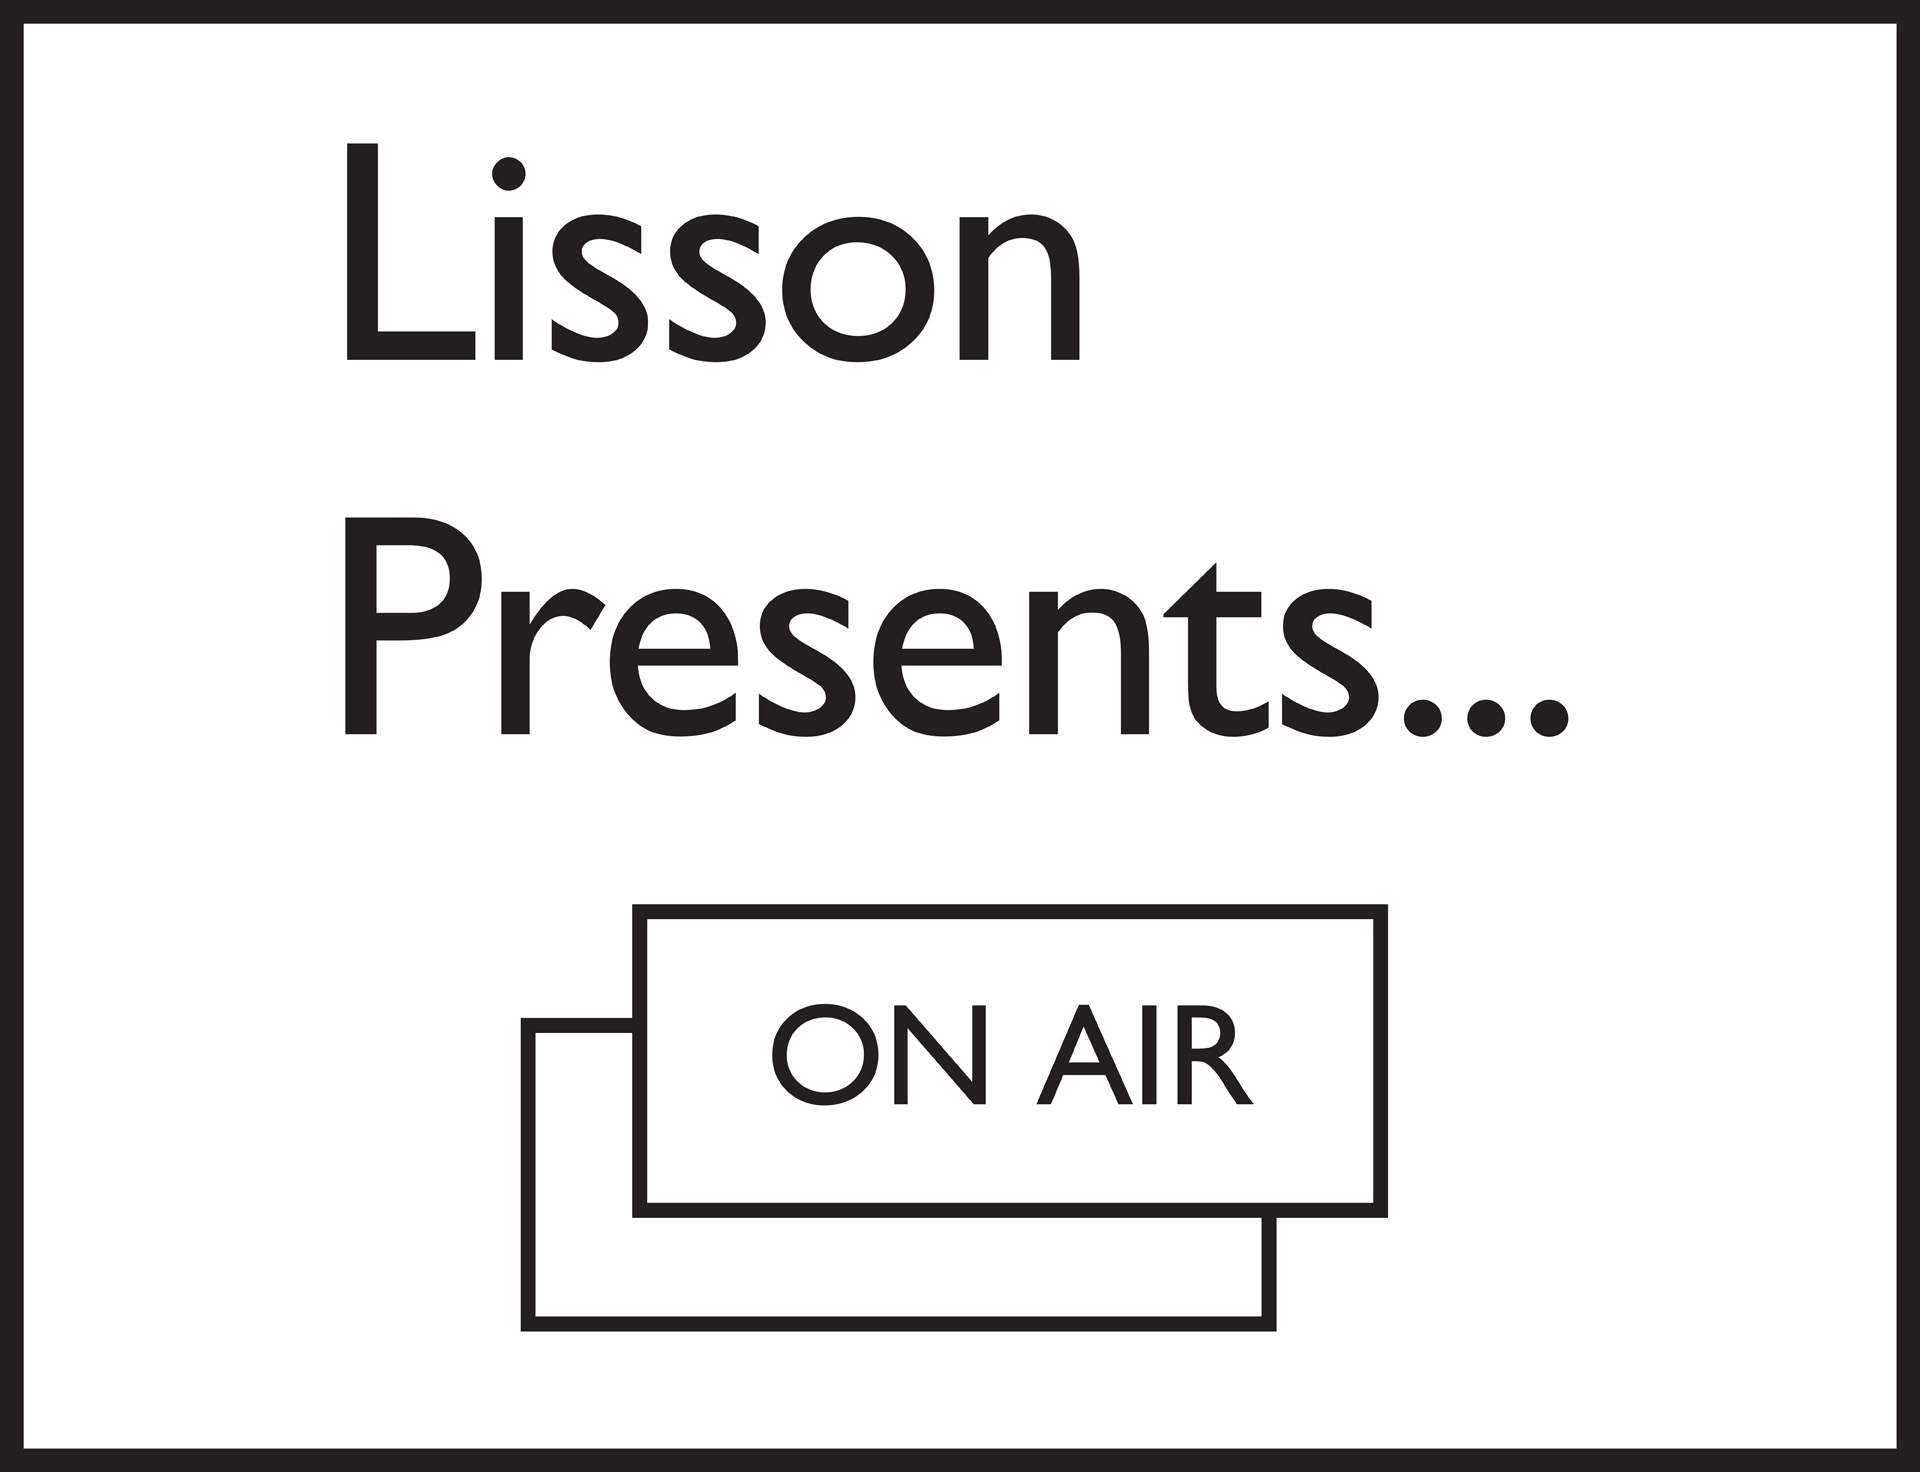 Lisson_presents_on_air_newspost-1